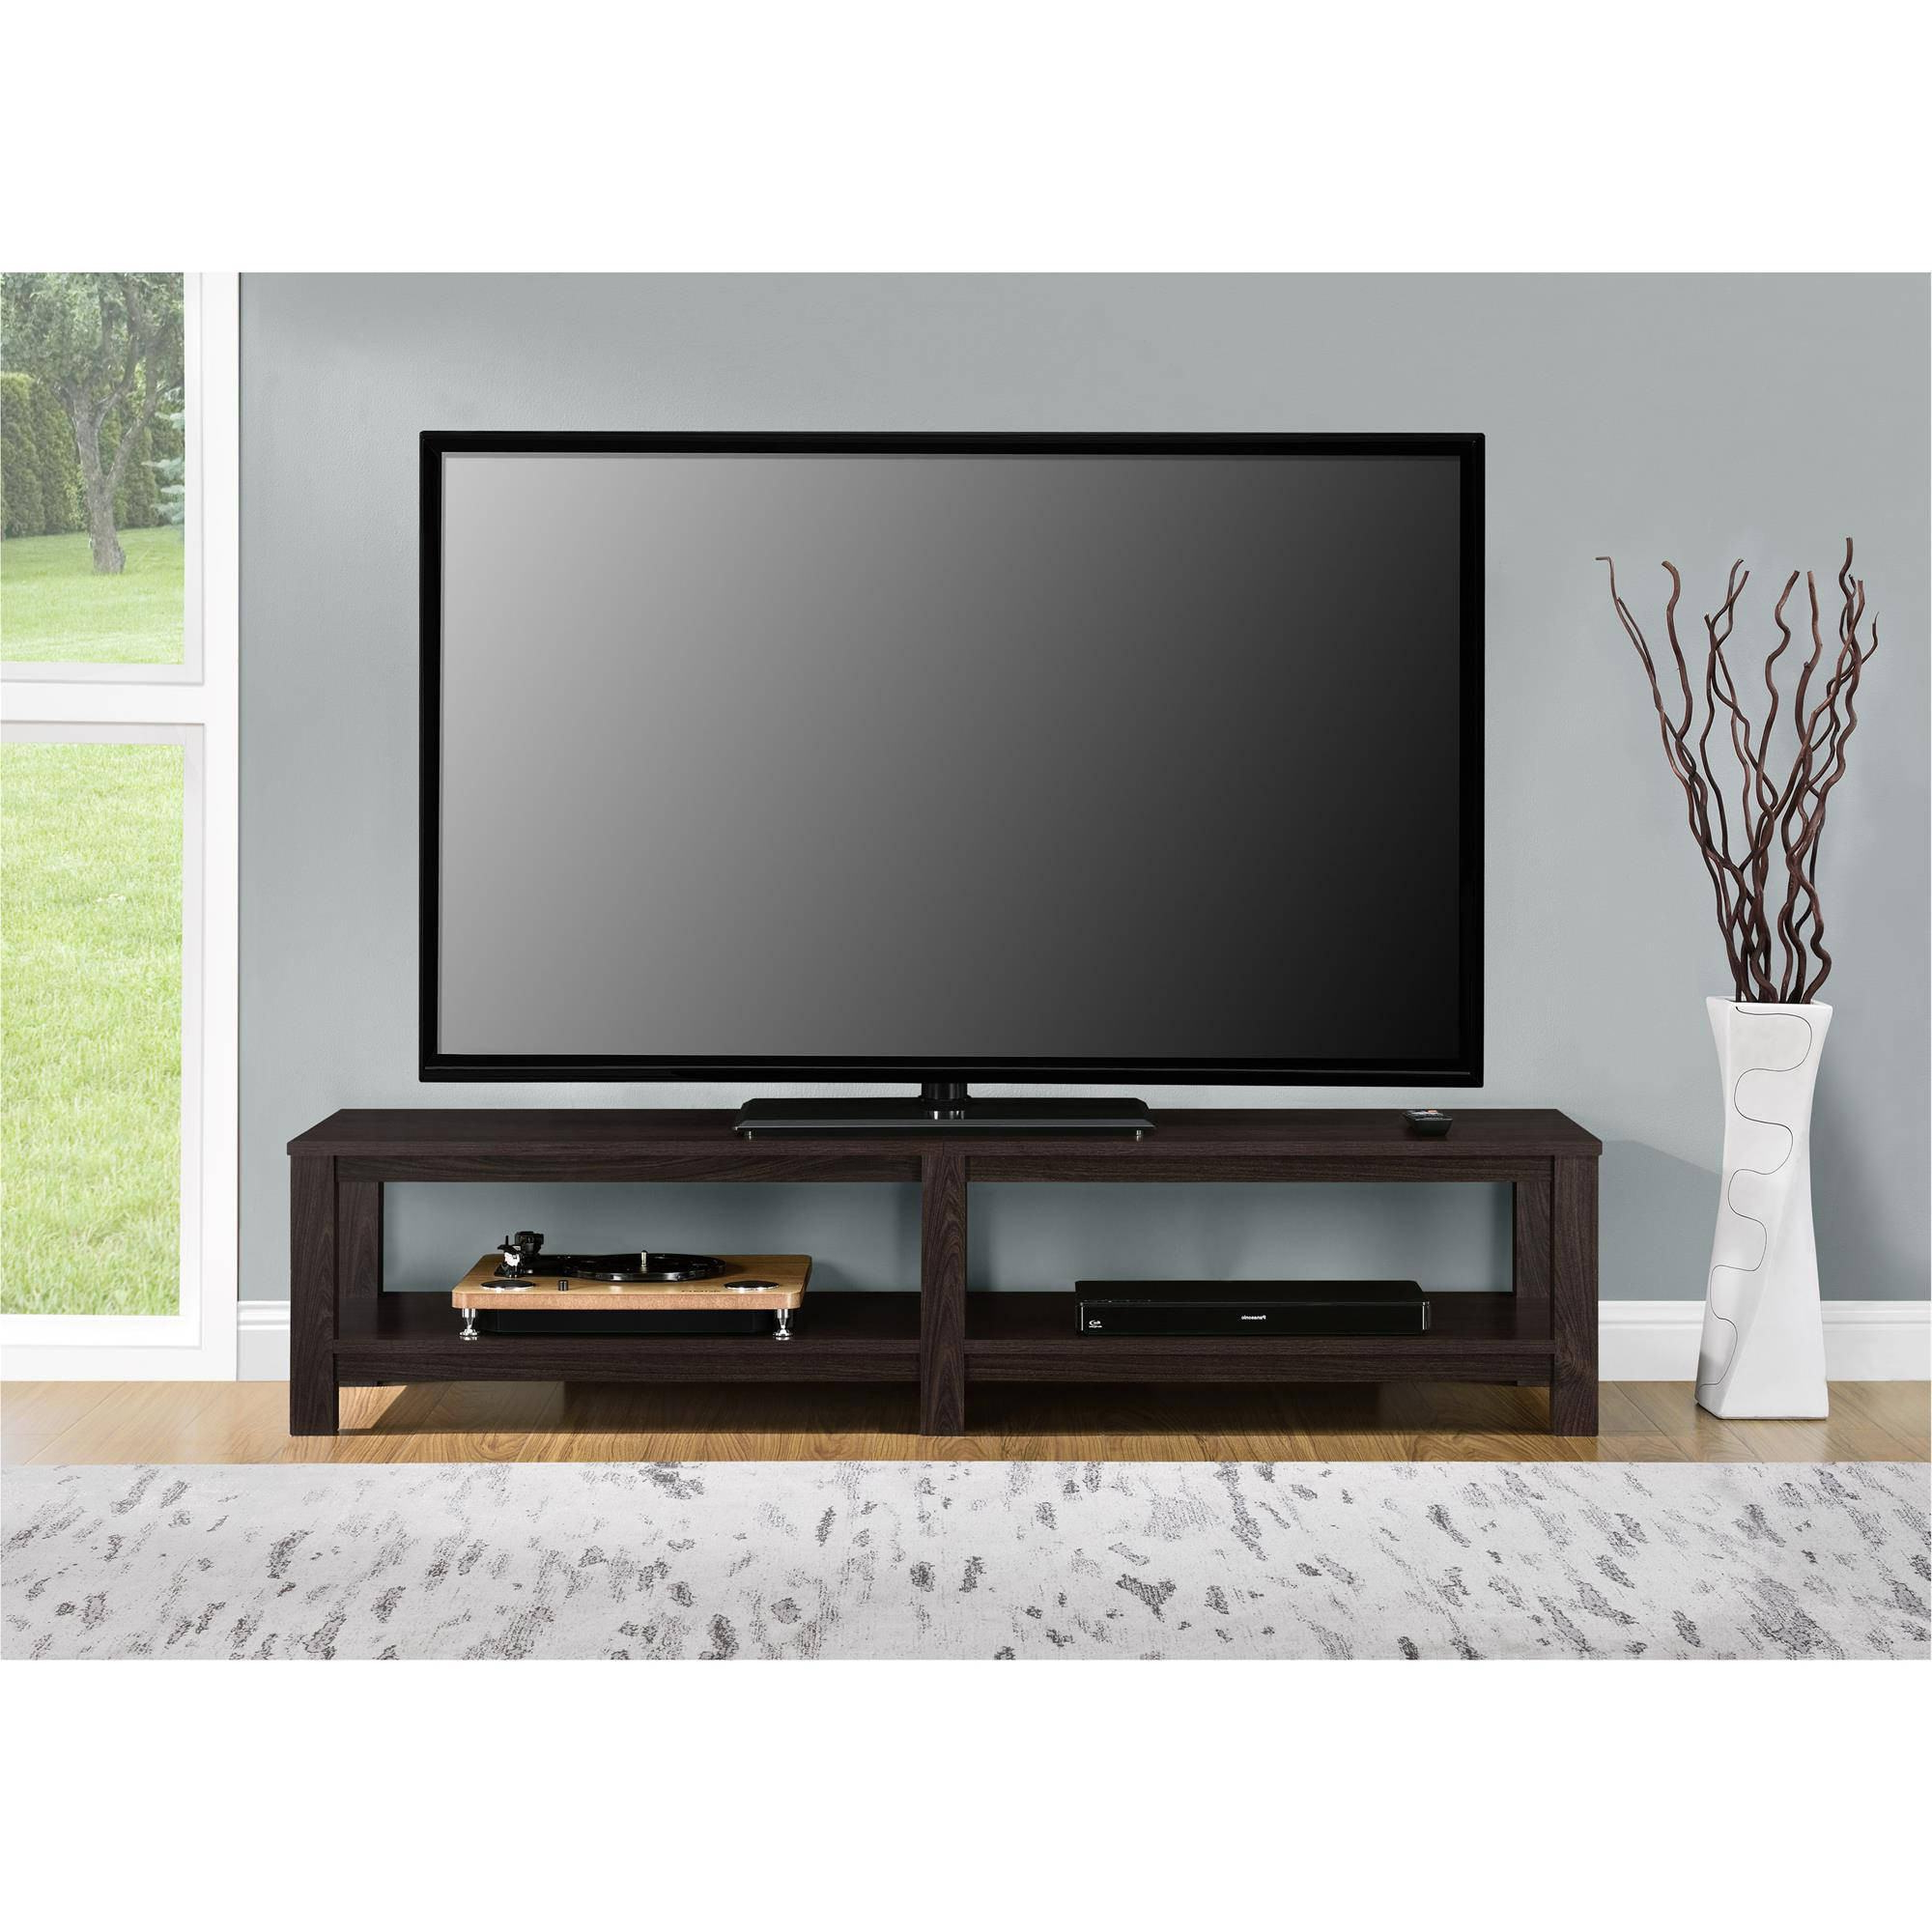 Jaxon 65 Inch Tv Stands In 2018 13 Stunning 65 Inch Tv Stand For Your New Living Room (View 16 of 20)